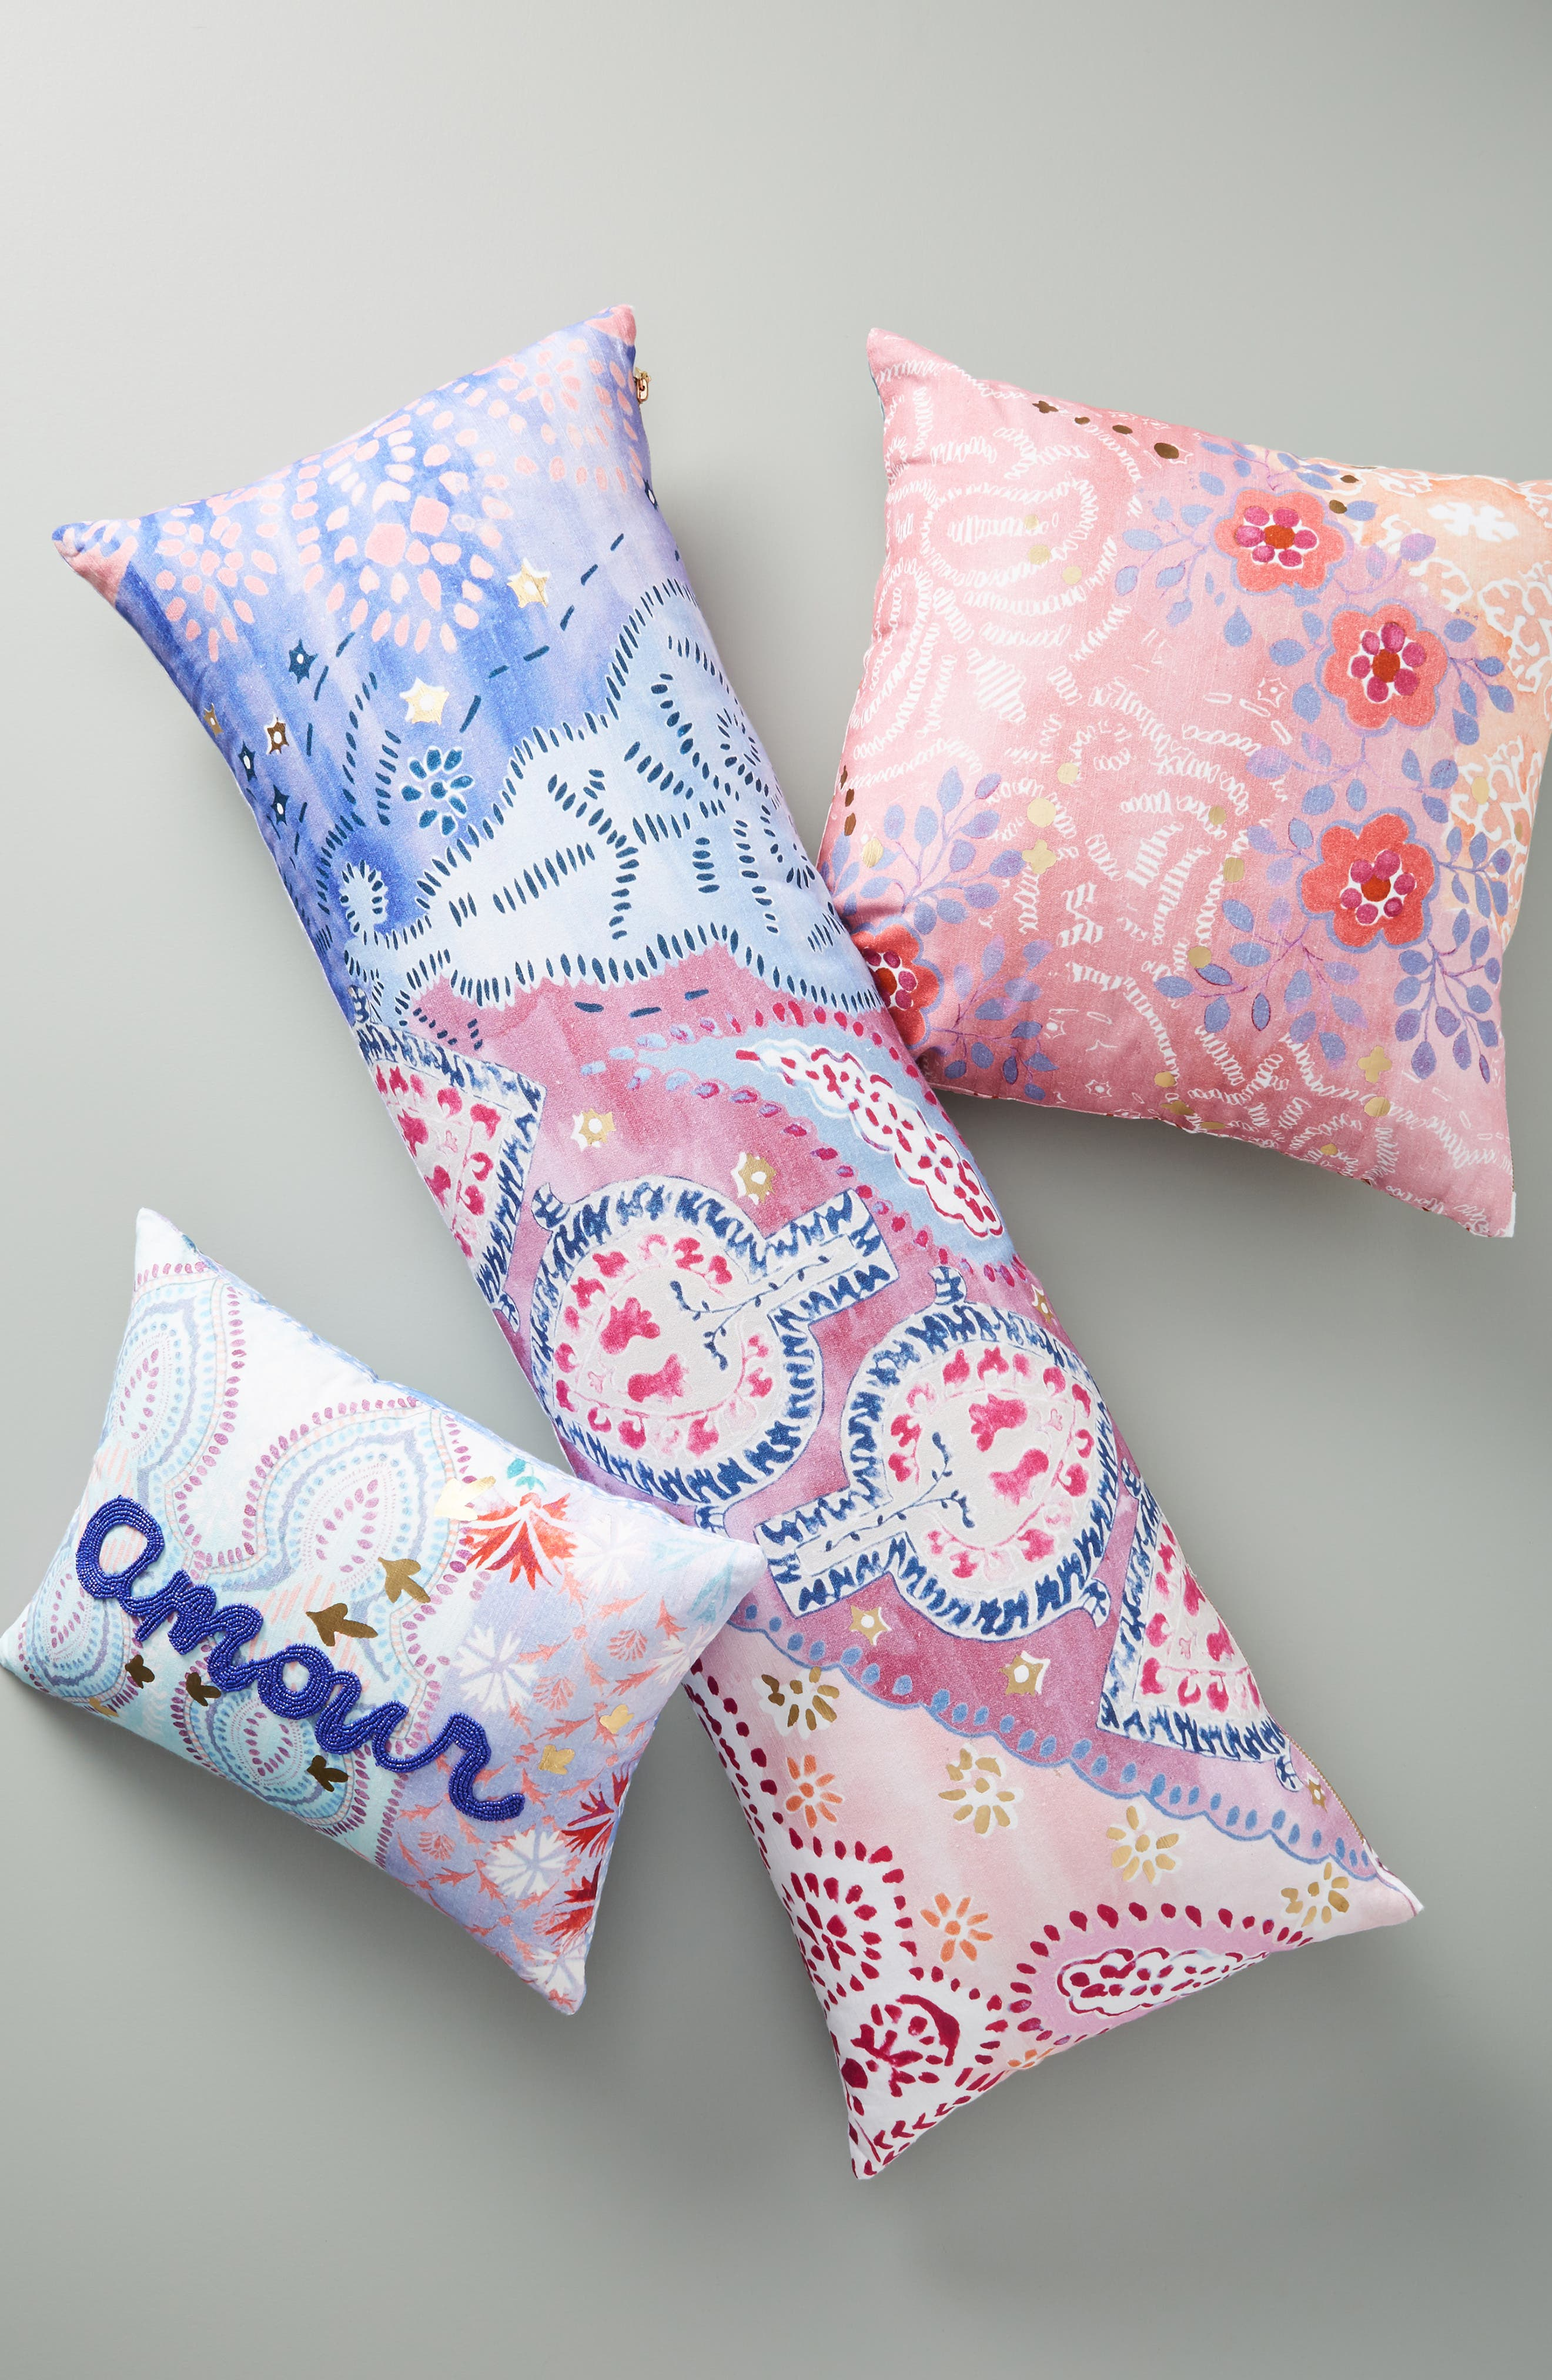 Piper Accent Pillow,                             Alternate thumbnail 5, color,                             PERIWINKLE